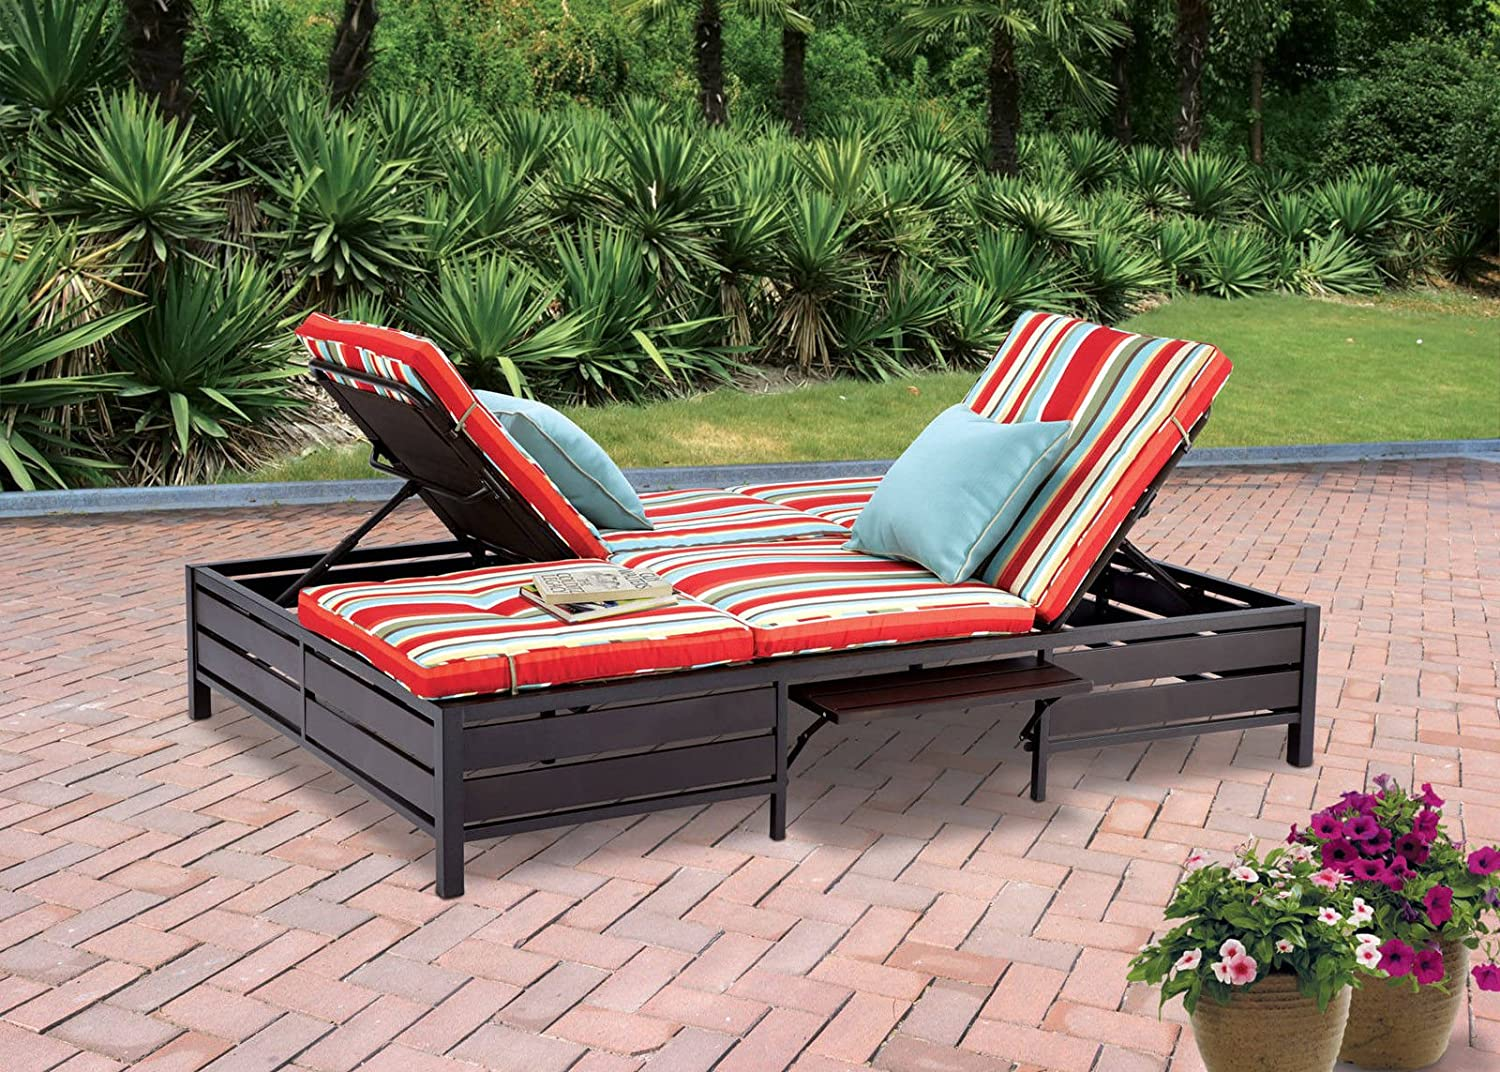 ... Lounger - This red stripe outdoor chaise lounge is comfortable sun patio furniture Guaranteed which can also be used in your garden near your pool ... & Amazon.com : Double Chaise Lounger - This red stripe outdoor chaise ...